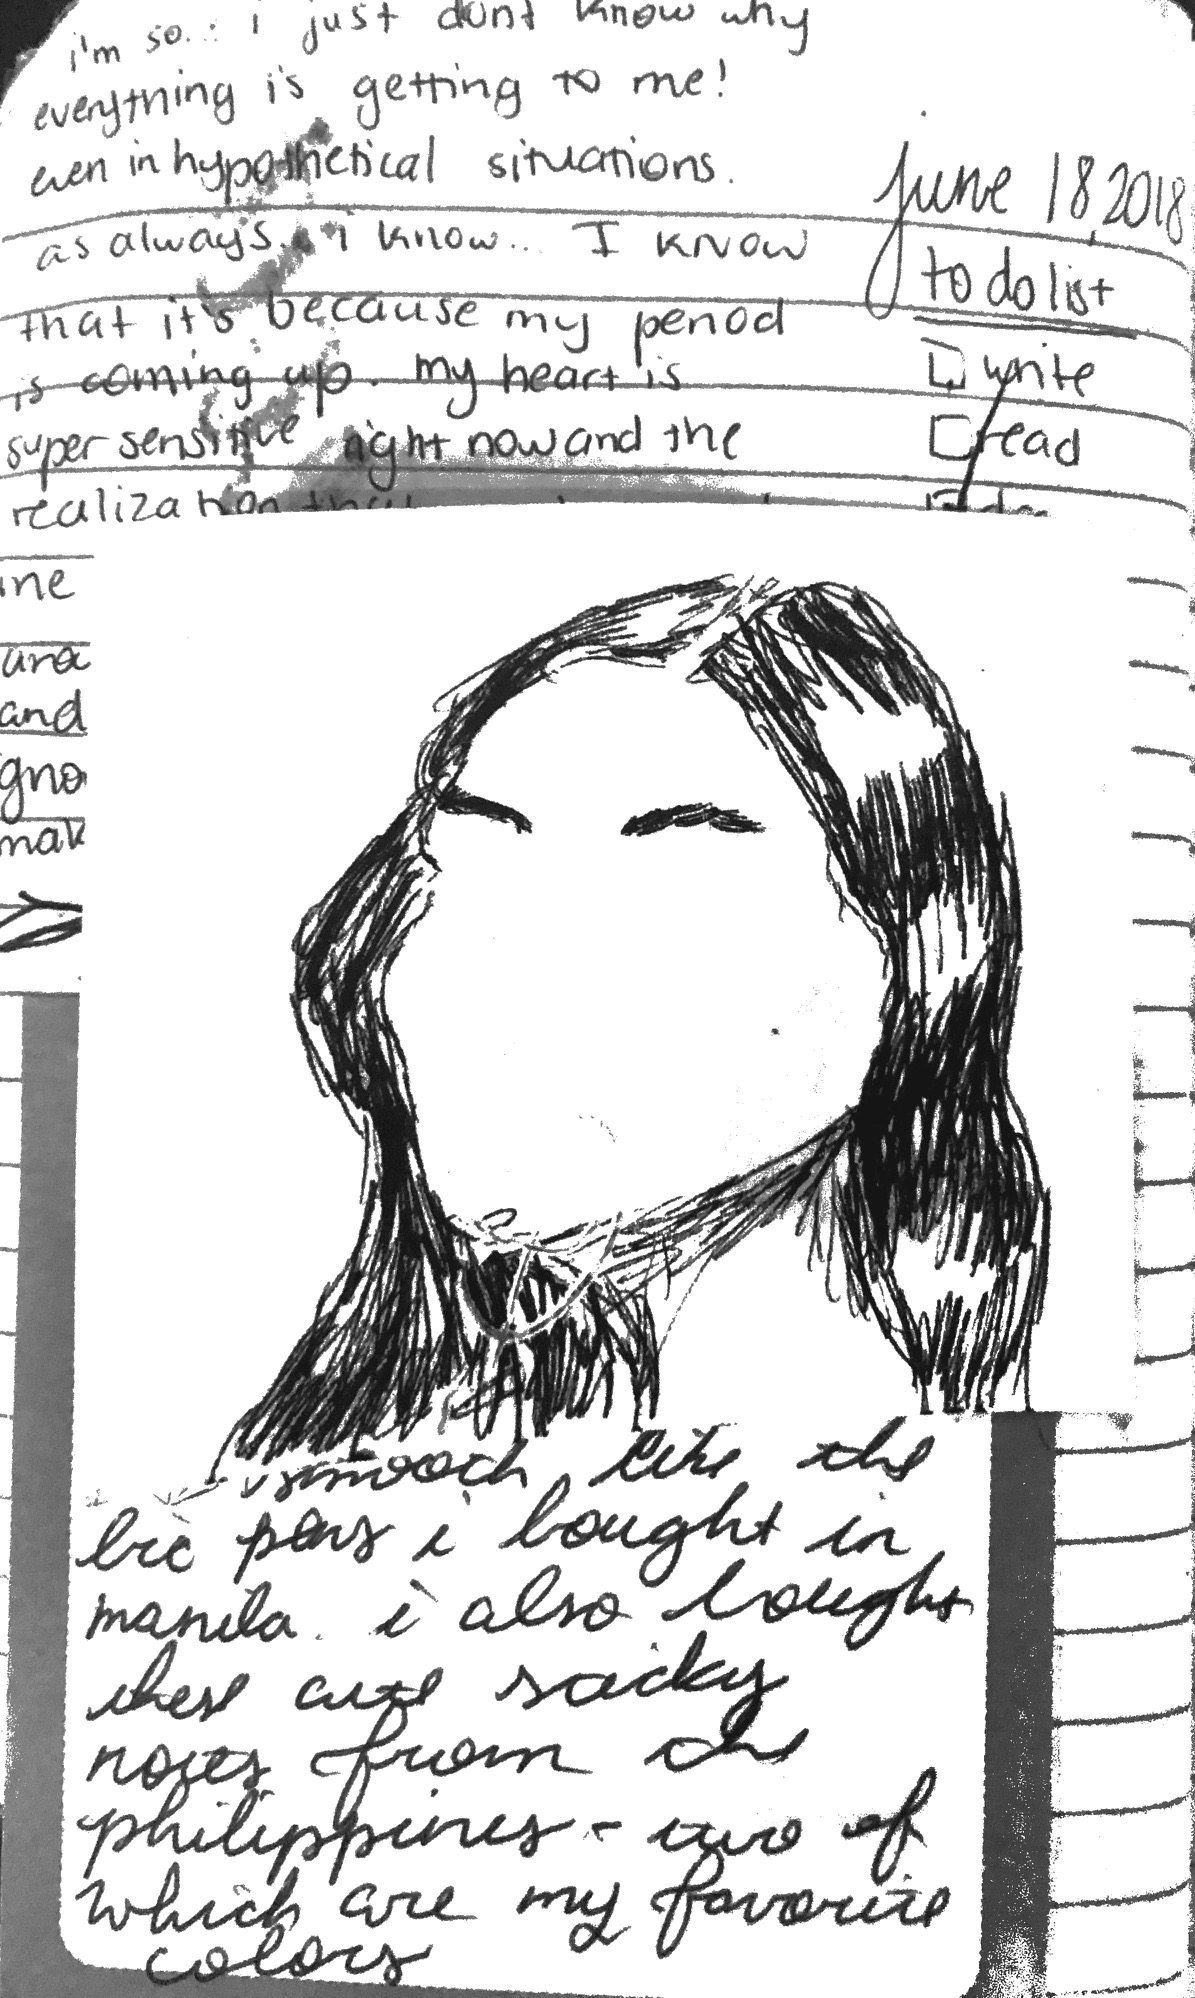 Journal Scans page 31.JPG